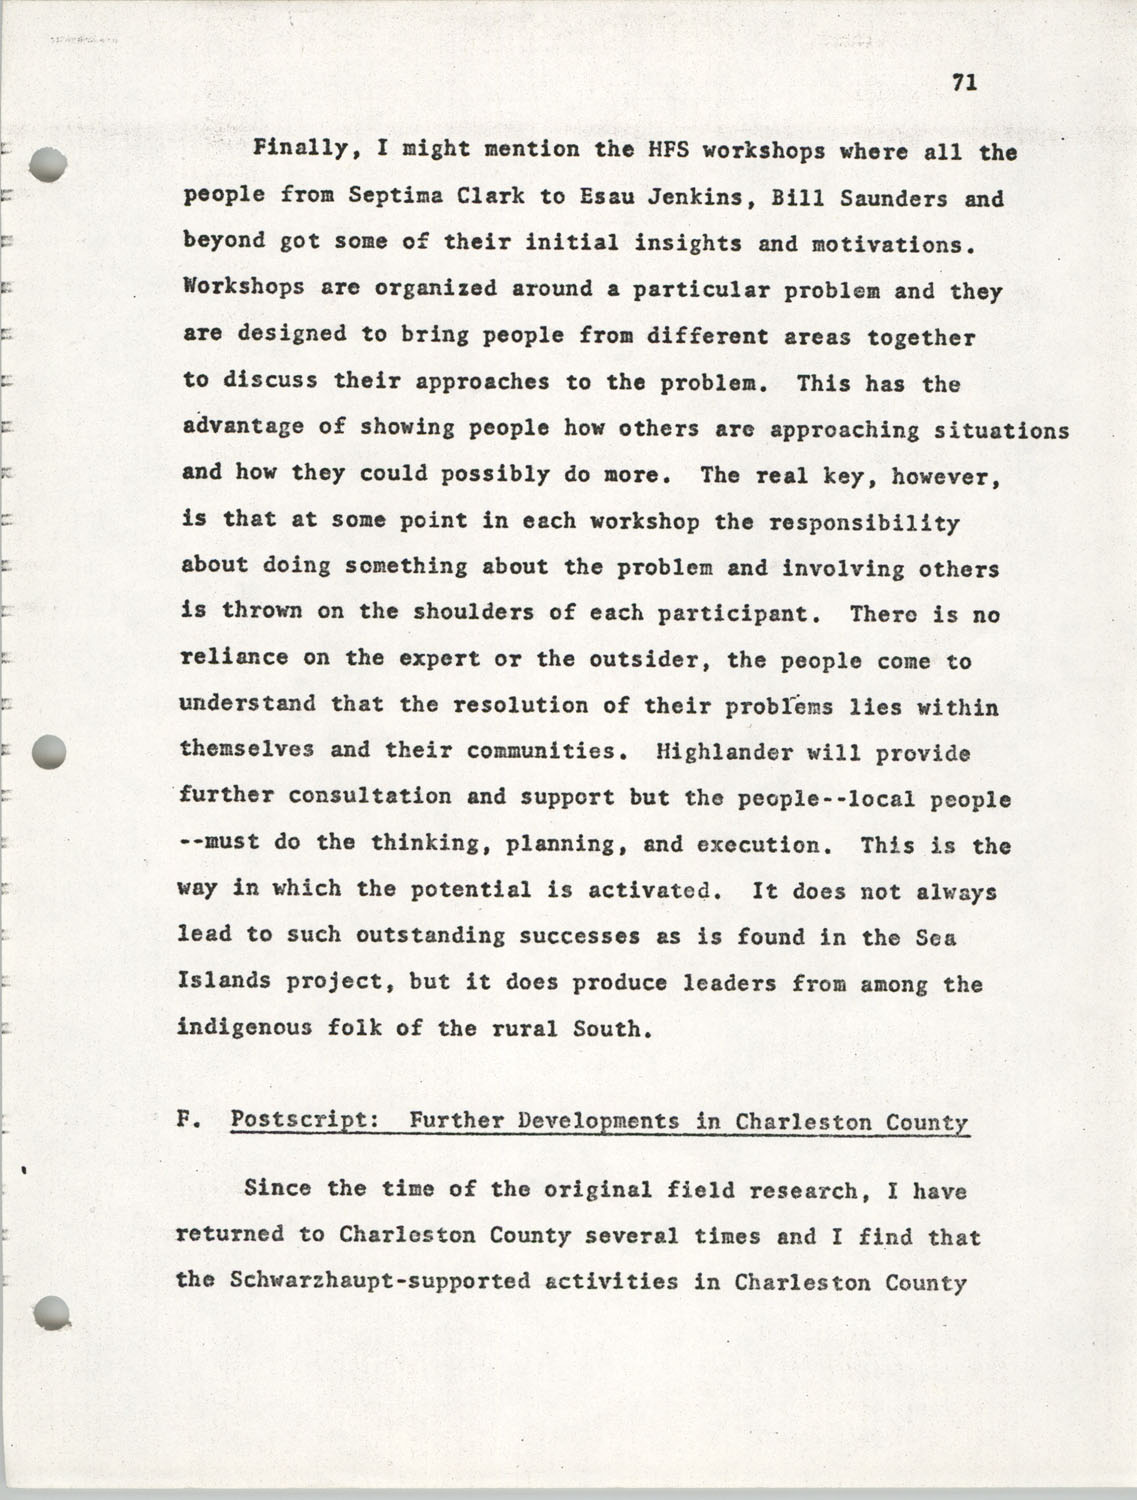 Citizen Participation. Democracy and Social Change, December 1, 1969, Page 71